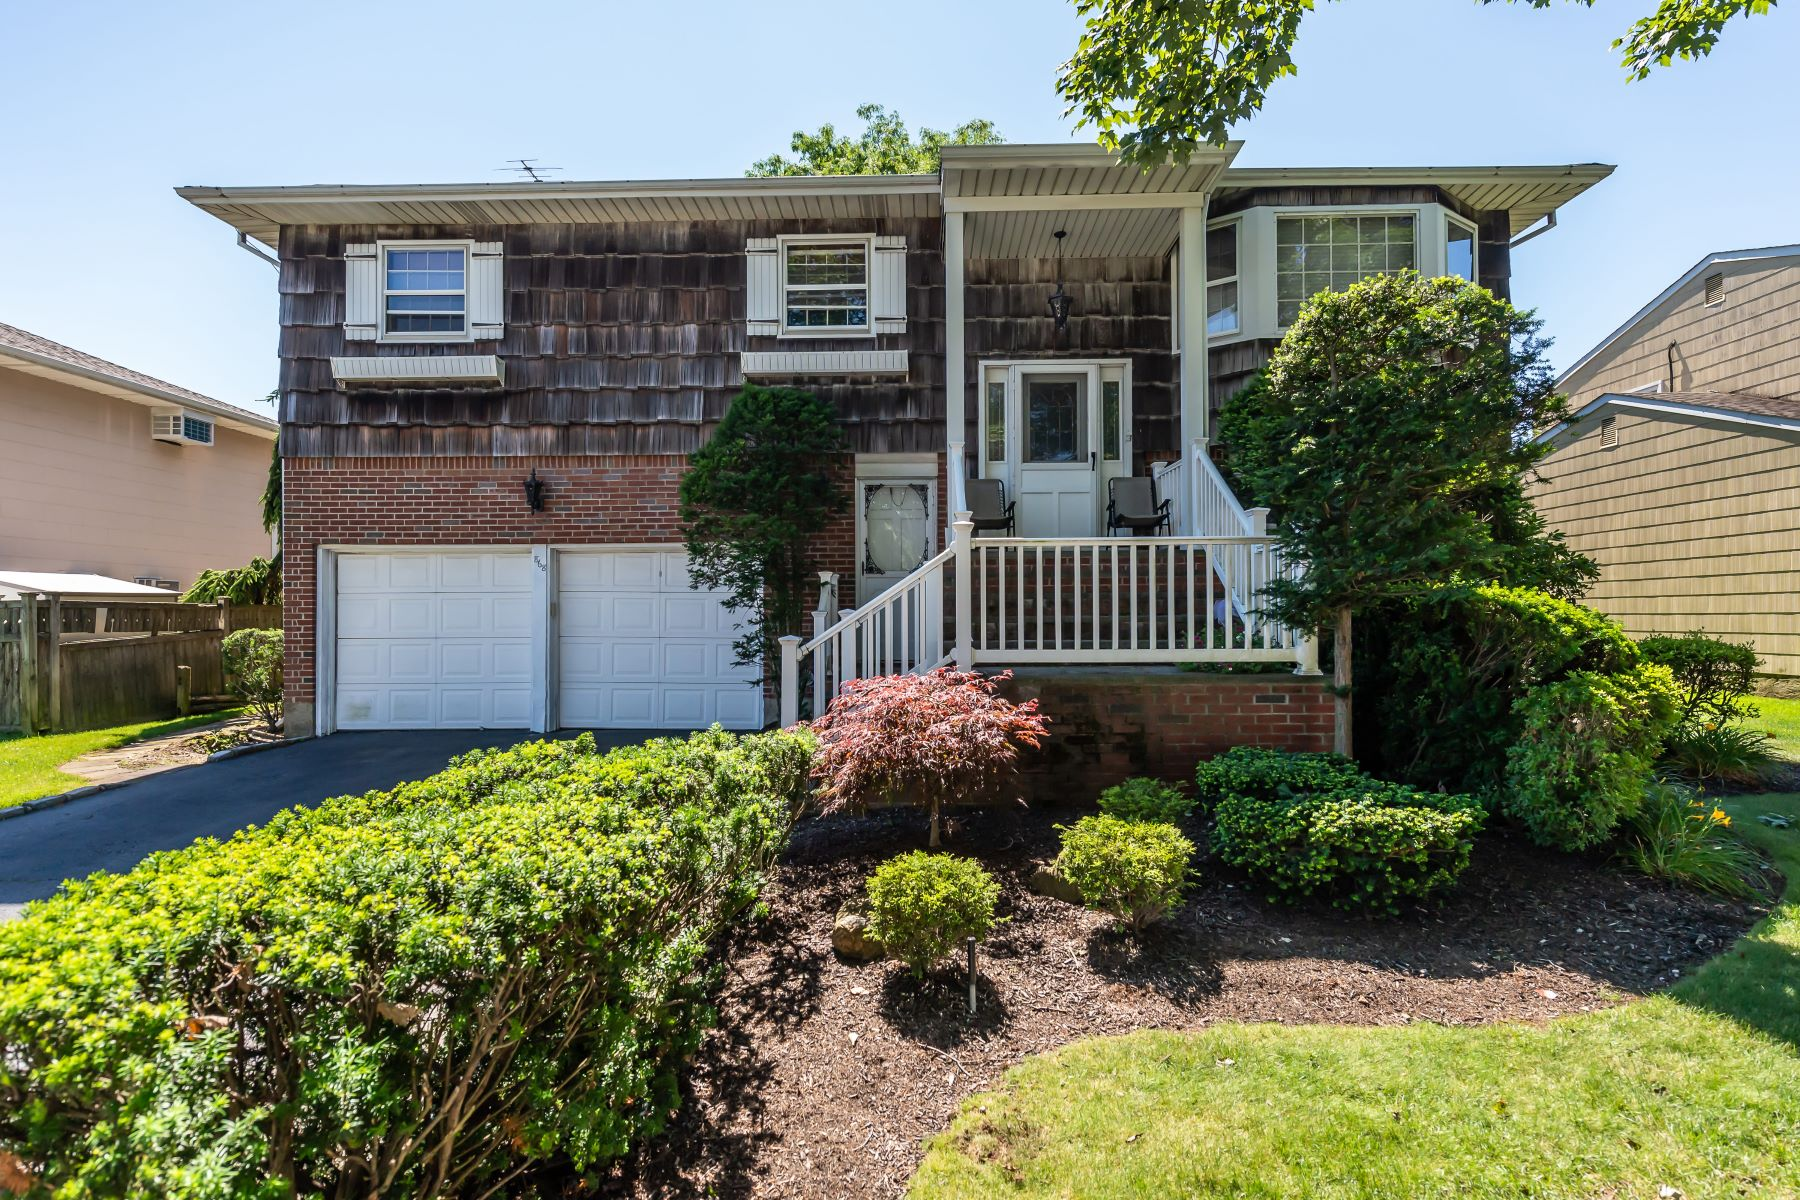 Single Family Homes for Active at N. Bellmore 868 Beckman Dr North Bellmore, New York 11710 United States